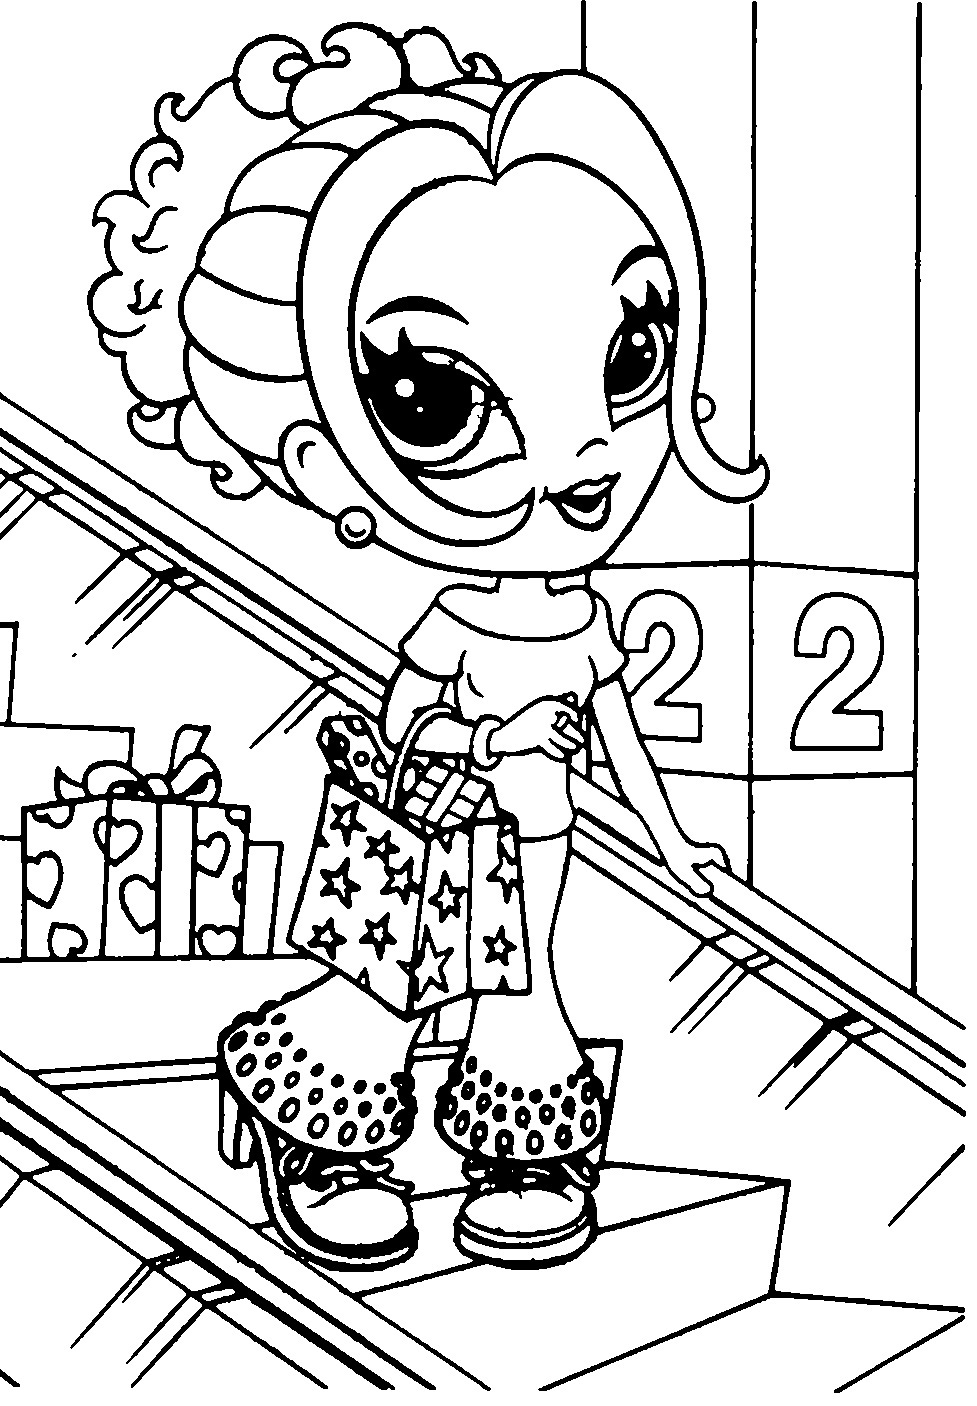 Prineable Lisa Frank Coloring Pages | Coloring Me